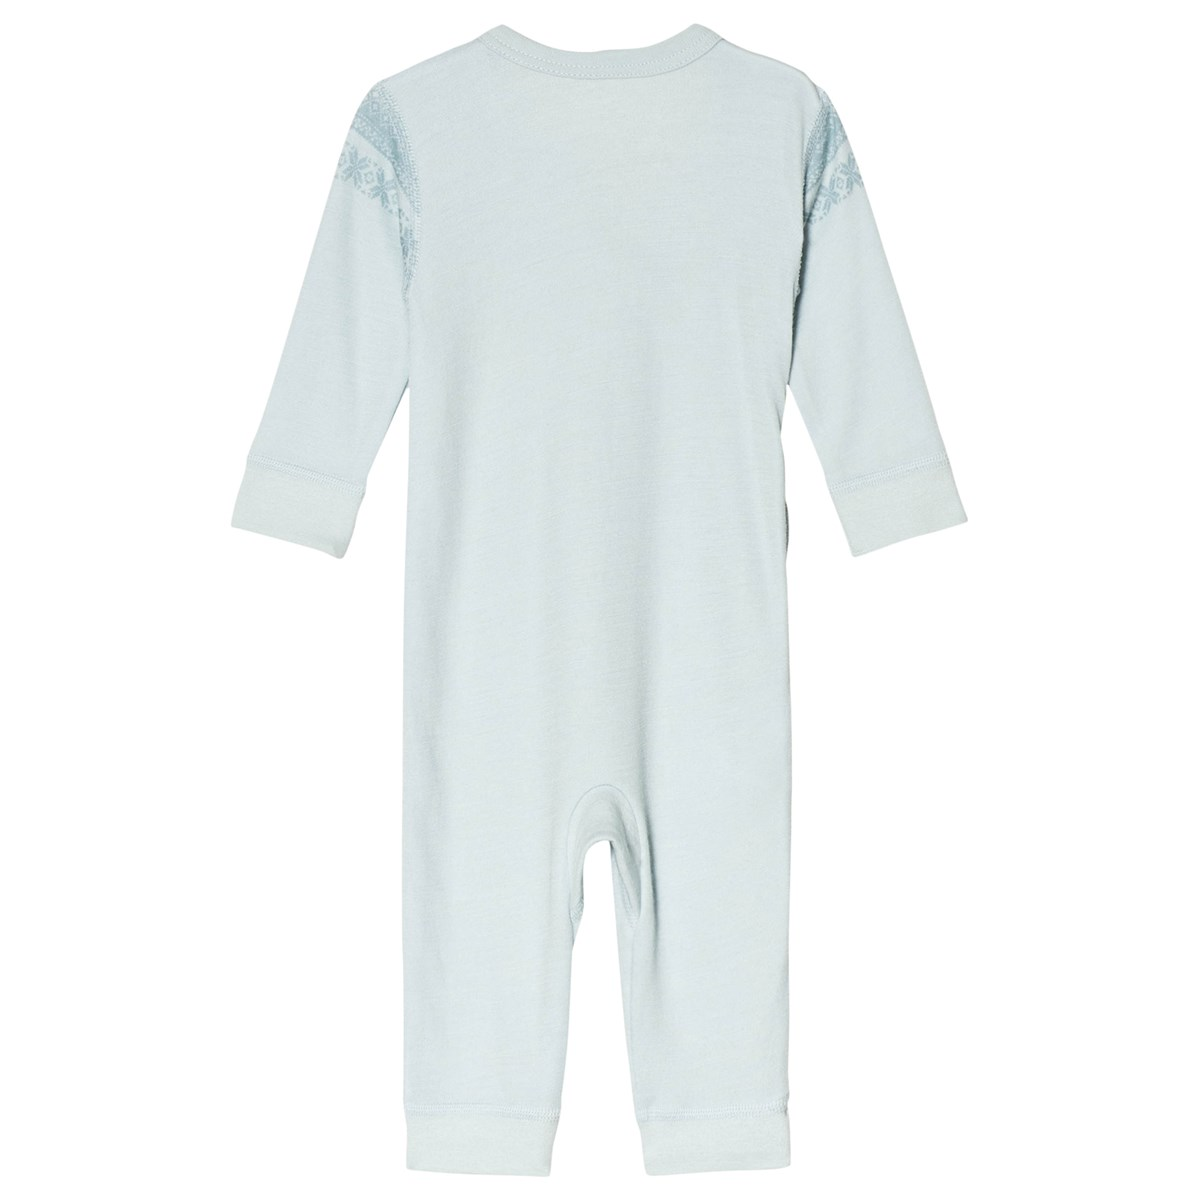 Nike Baby One Piece, White Blue Striped 03 Months